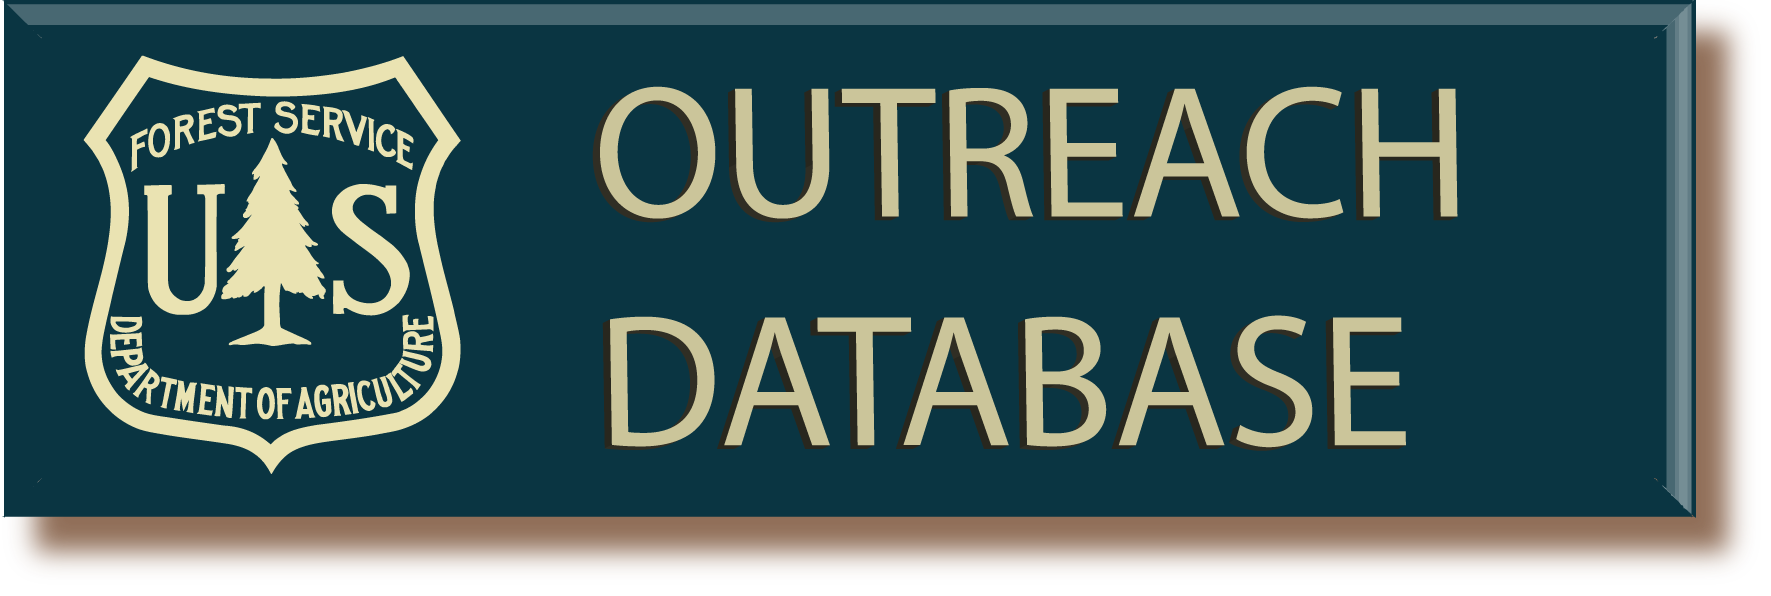 Forest Service Outreach Database